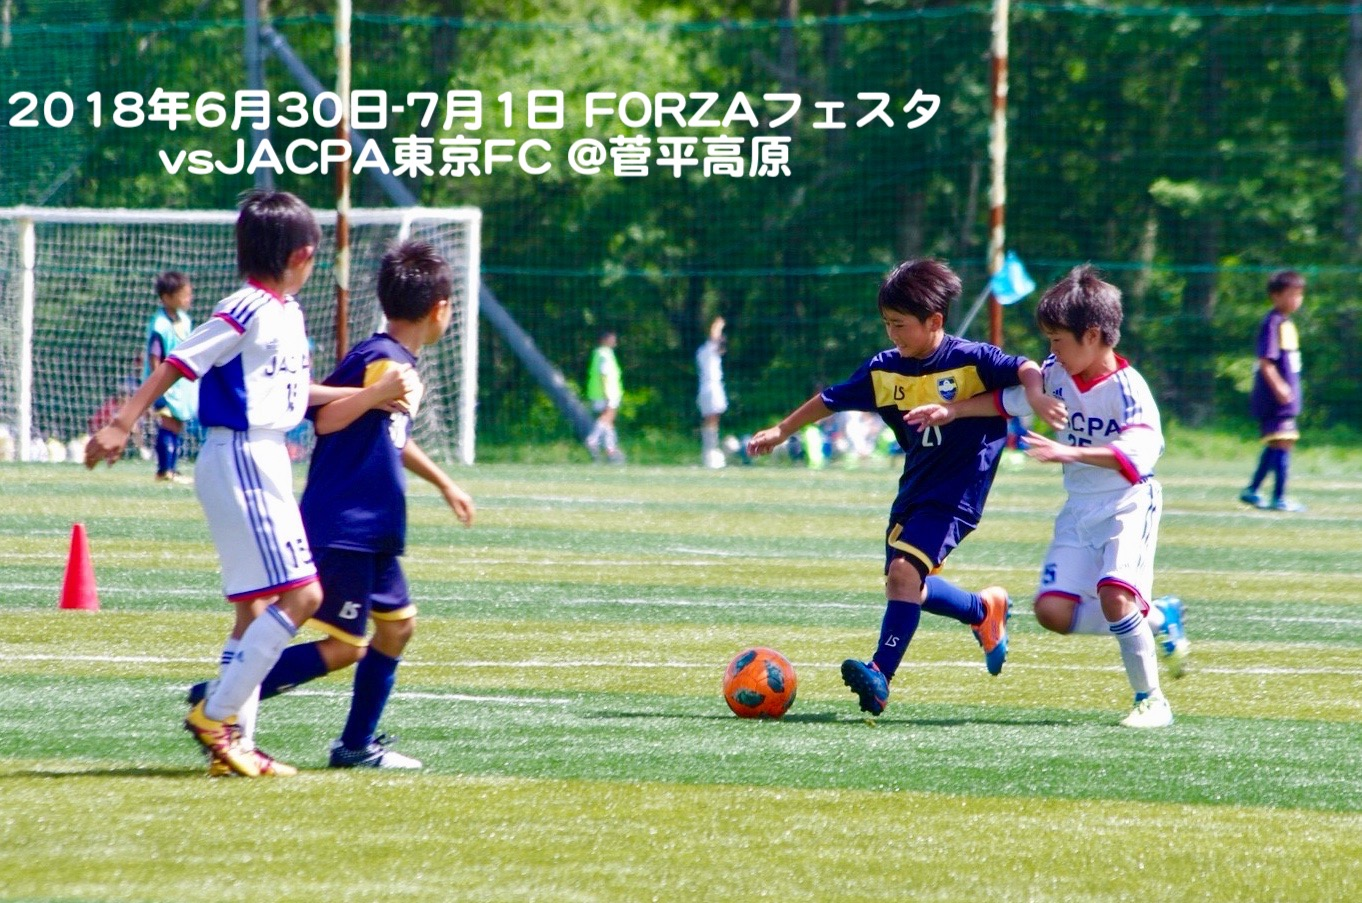 180701 Forza菅平_JACPA 2